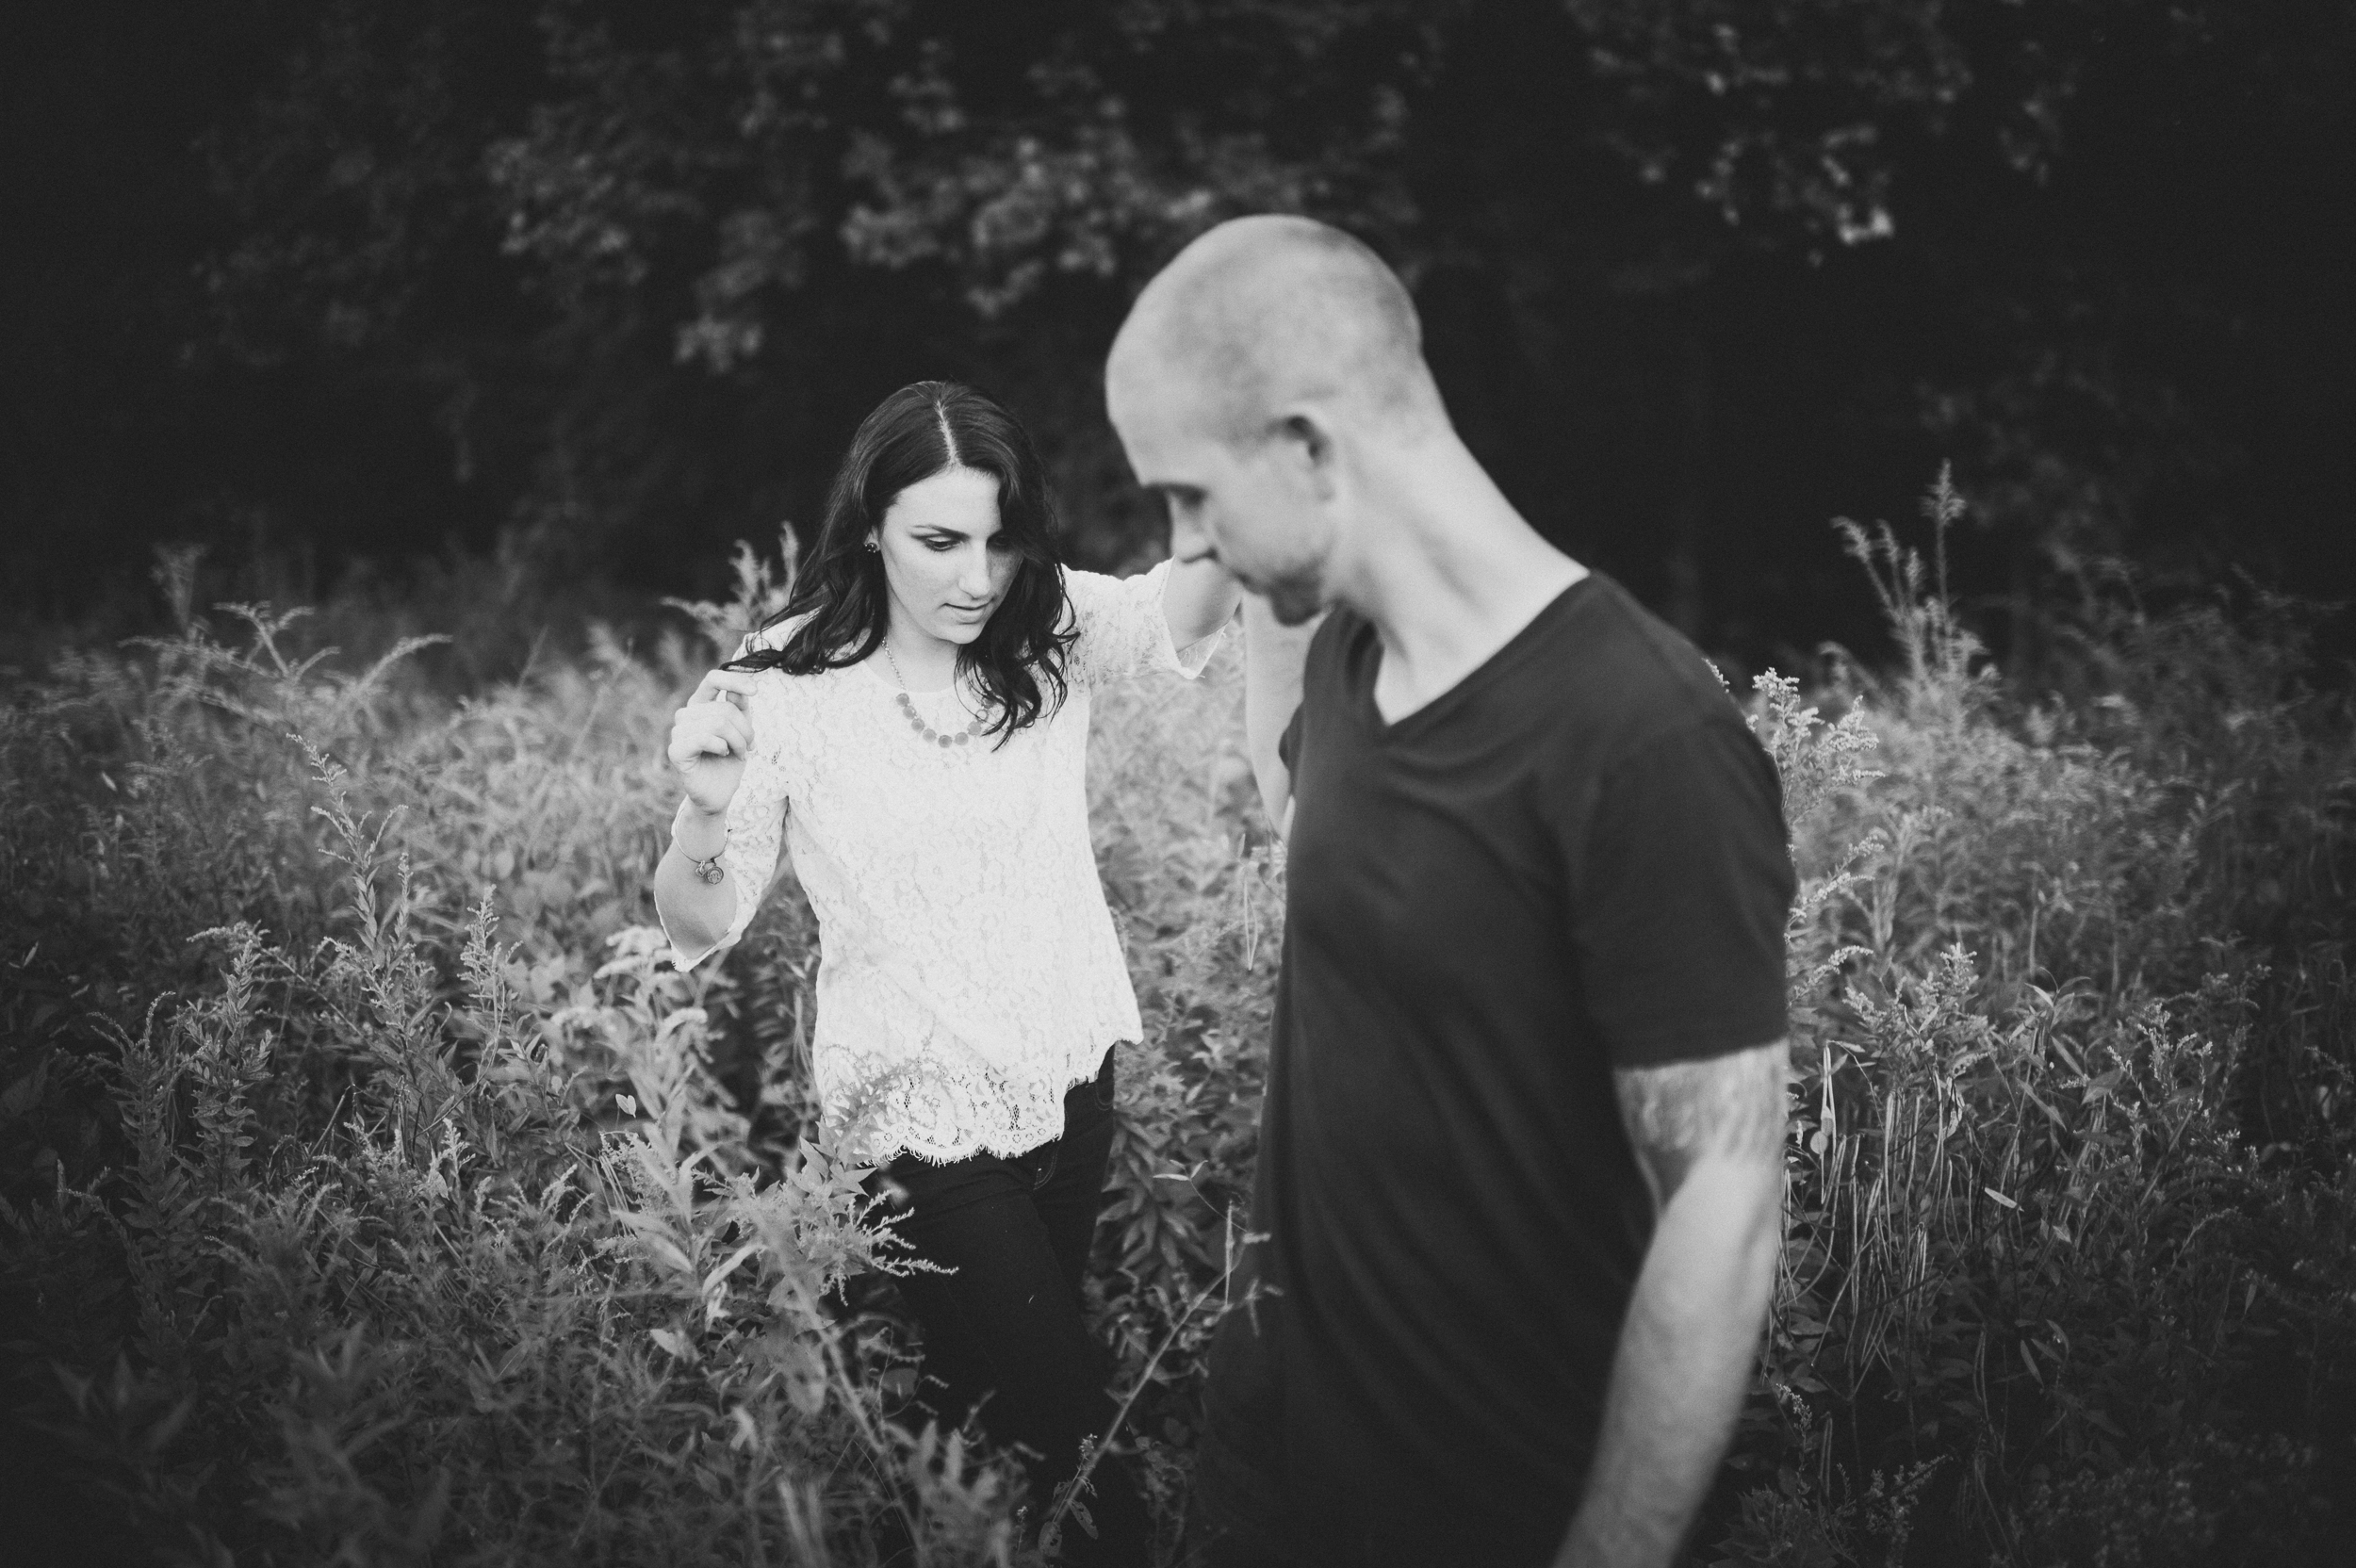 pat-robinson-photography-pa-engagement-session-18.jpg